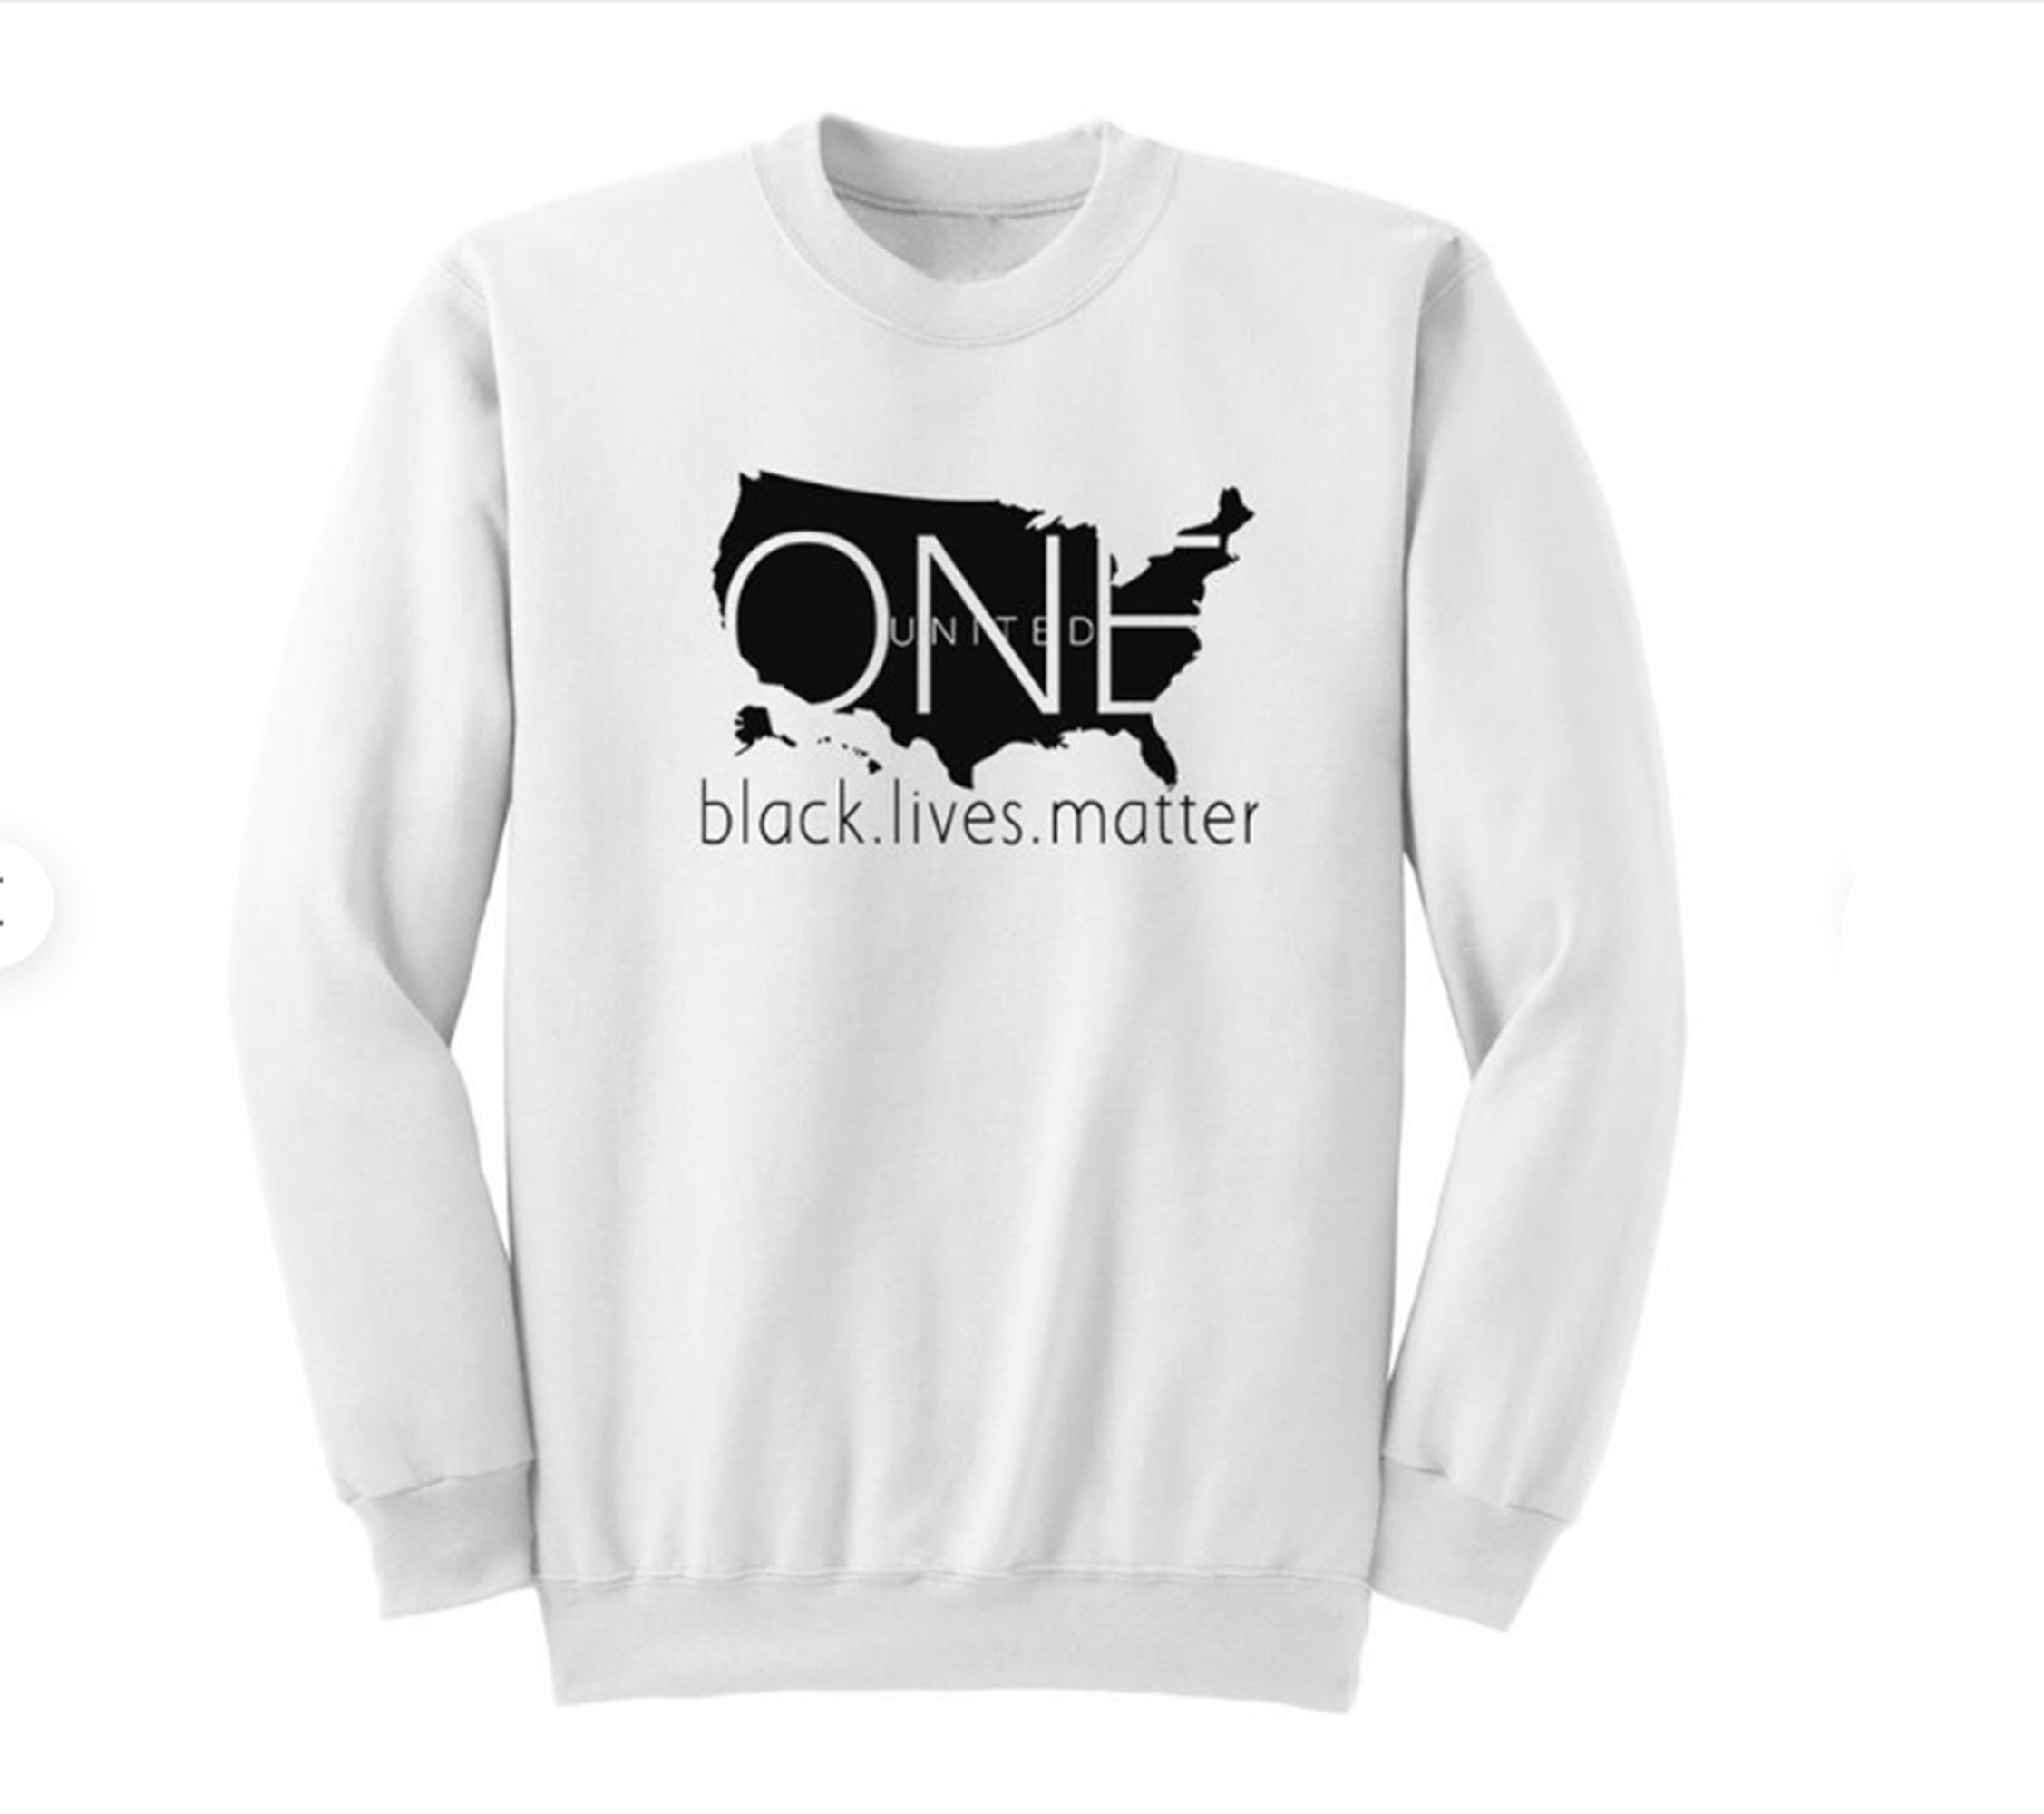 WOMENS BLACK LIVES MATTER SWEATSHIRT